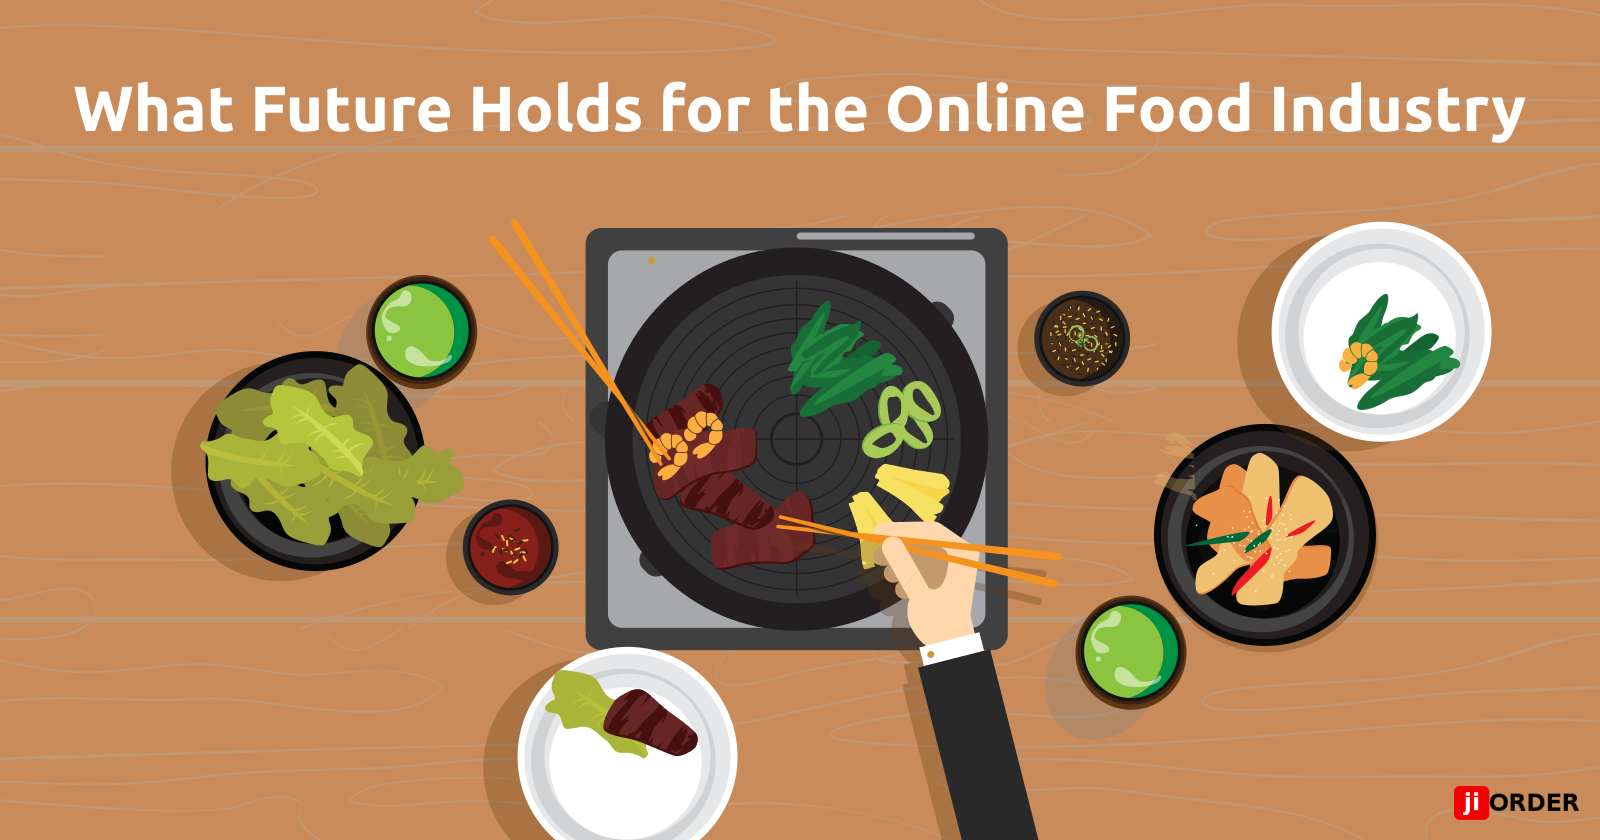 Embracing New Niches in Online Food Industry